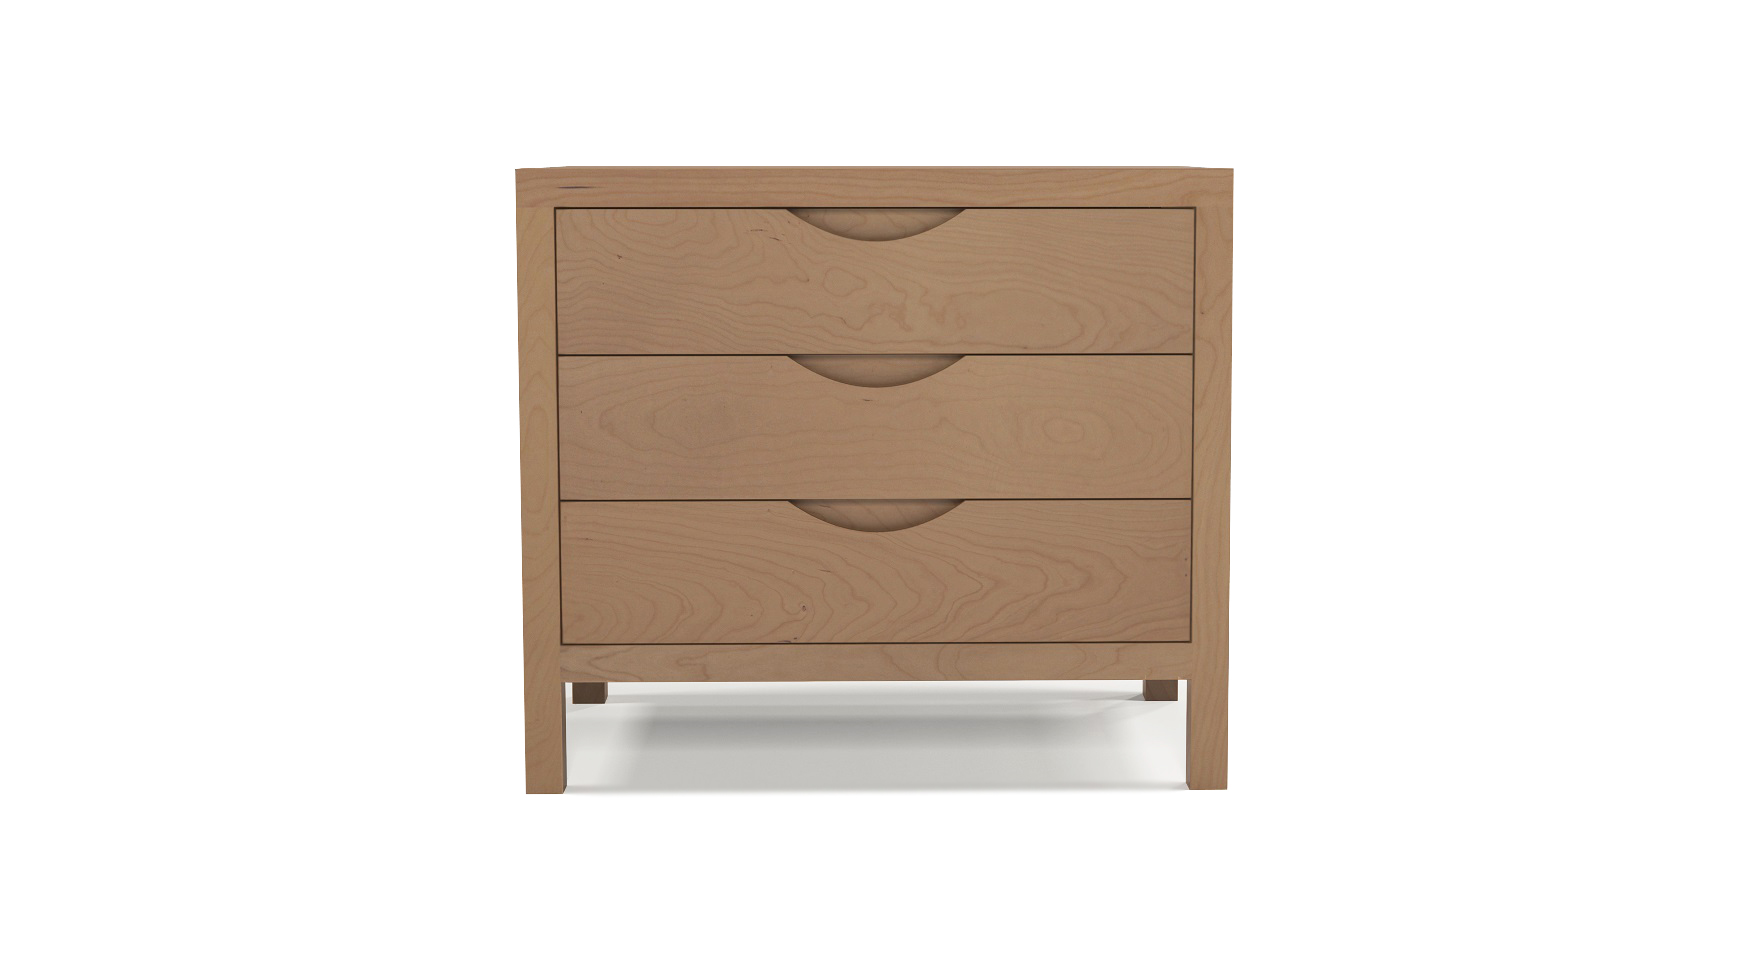 Cherry wood luxury furniture three drawer bedside table with integrated wood handles